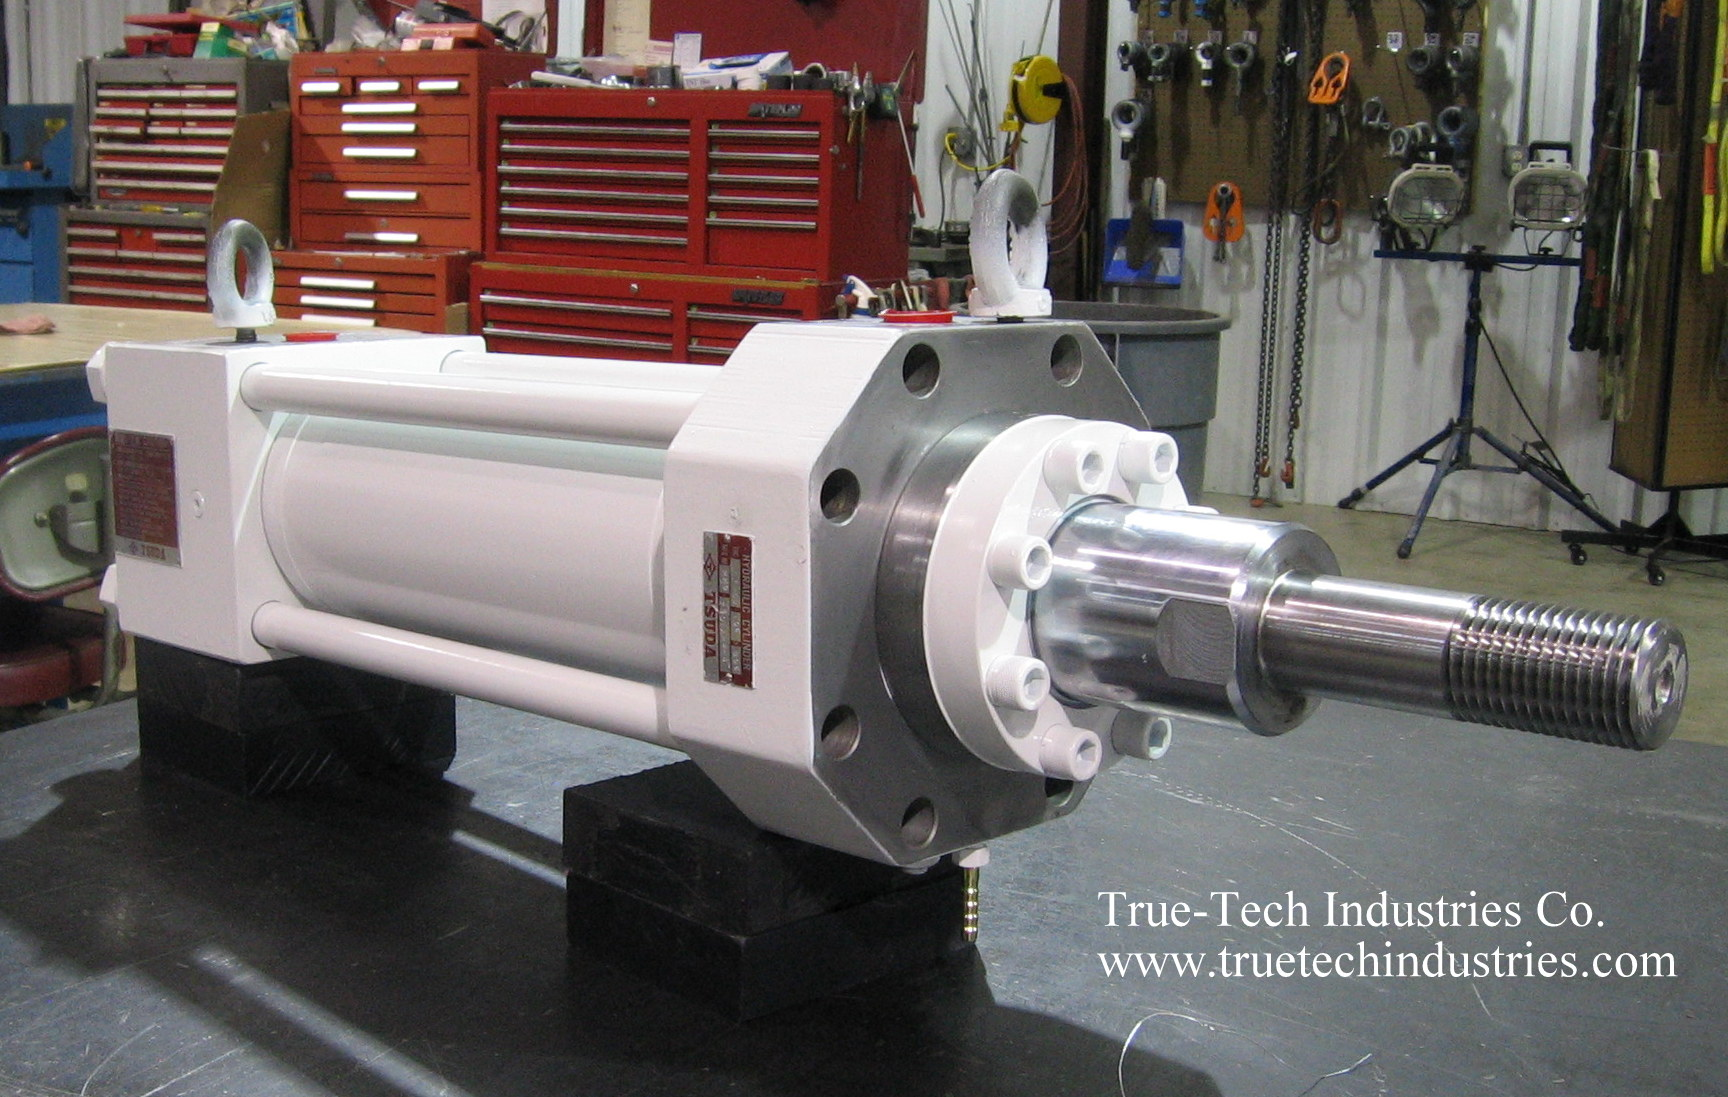 True-Tech Industries Co  - Hydraulic and Pneumatic Cylinders